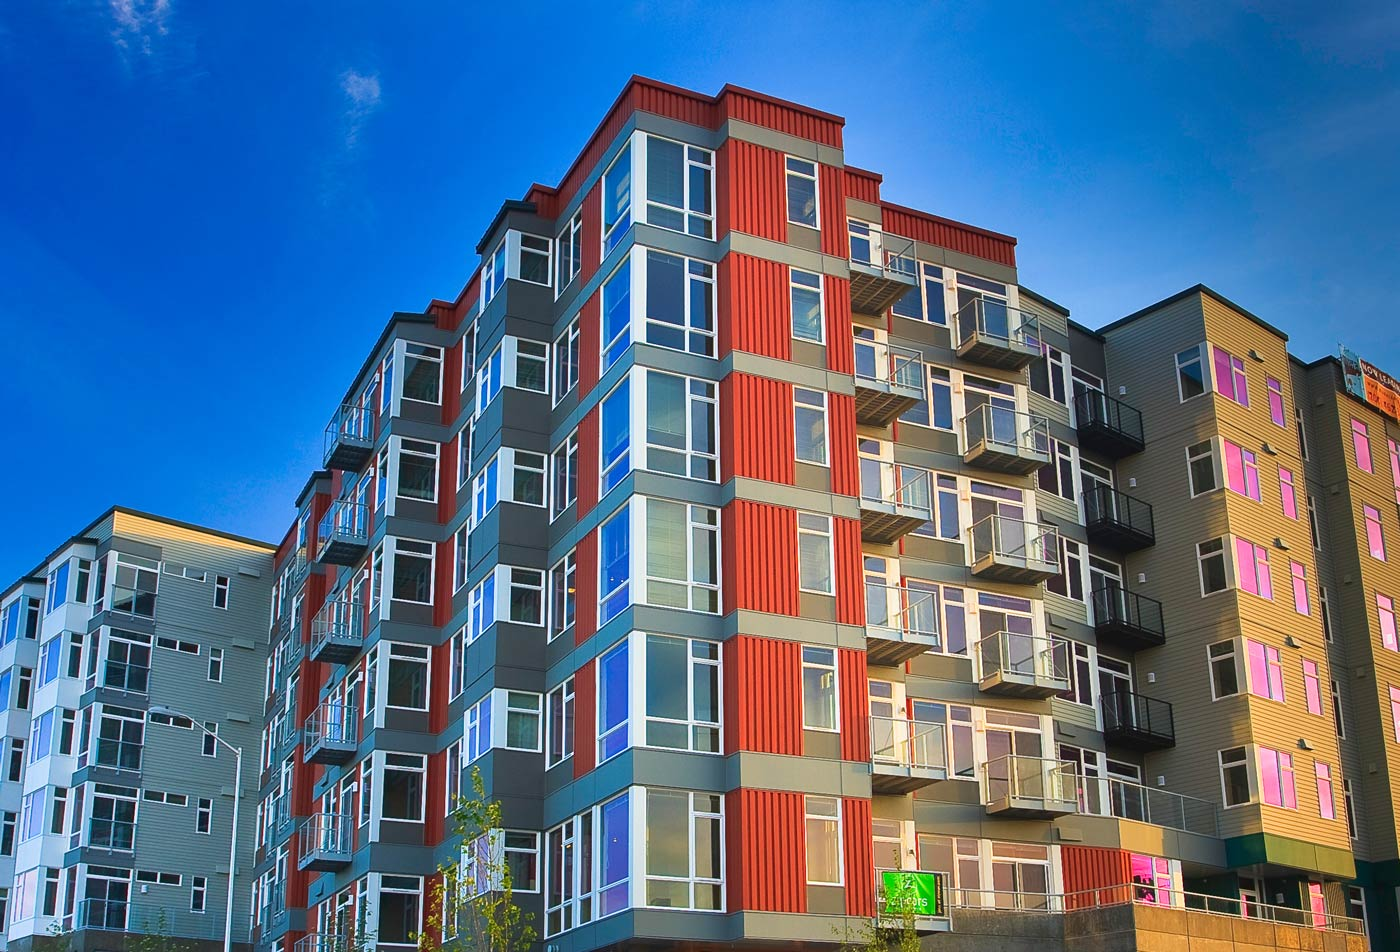 Mural Apartments | Apartments in Seattle WA | Exterior View 1